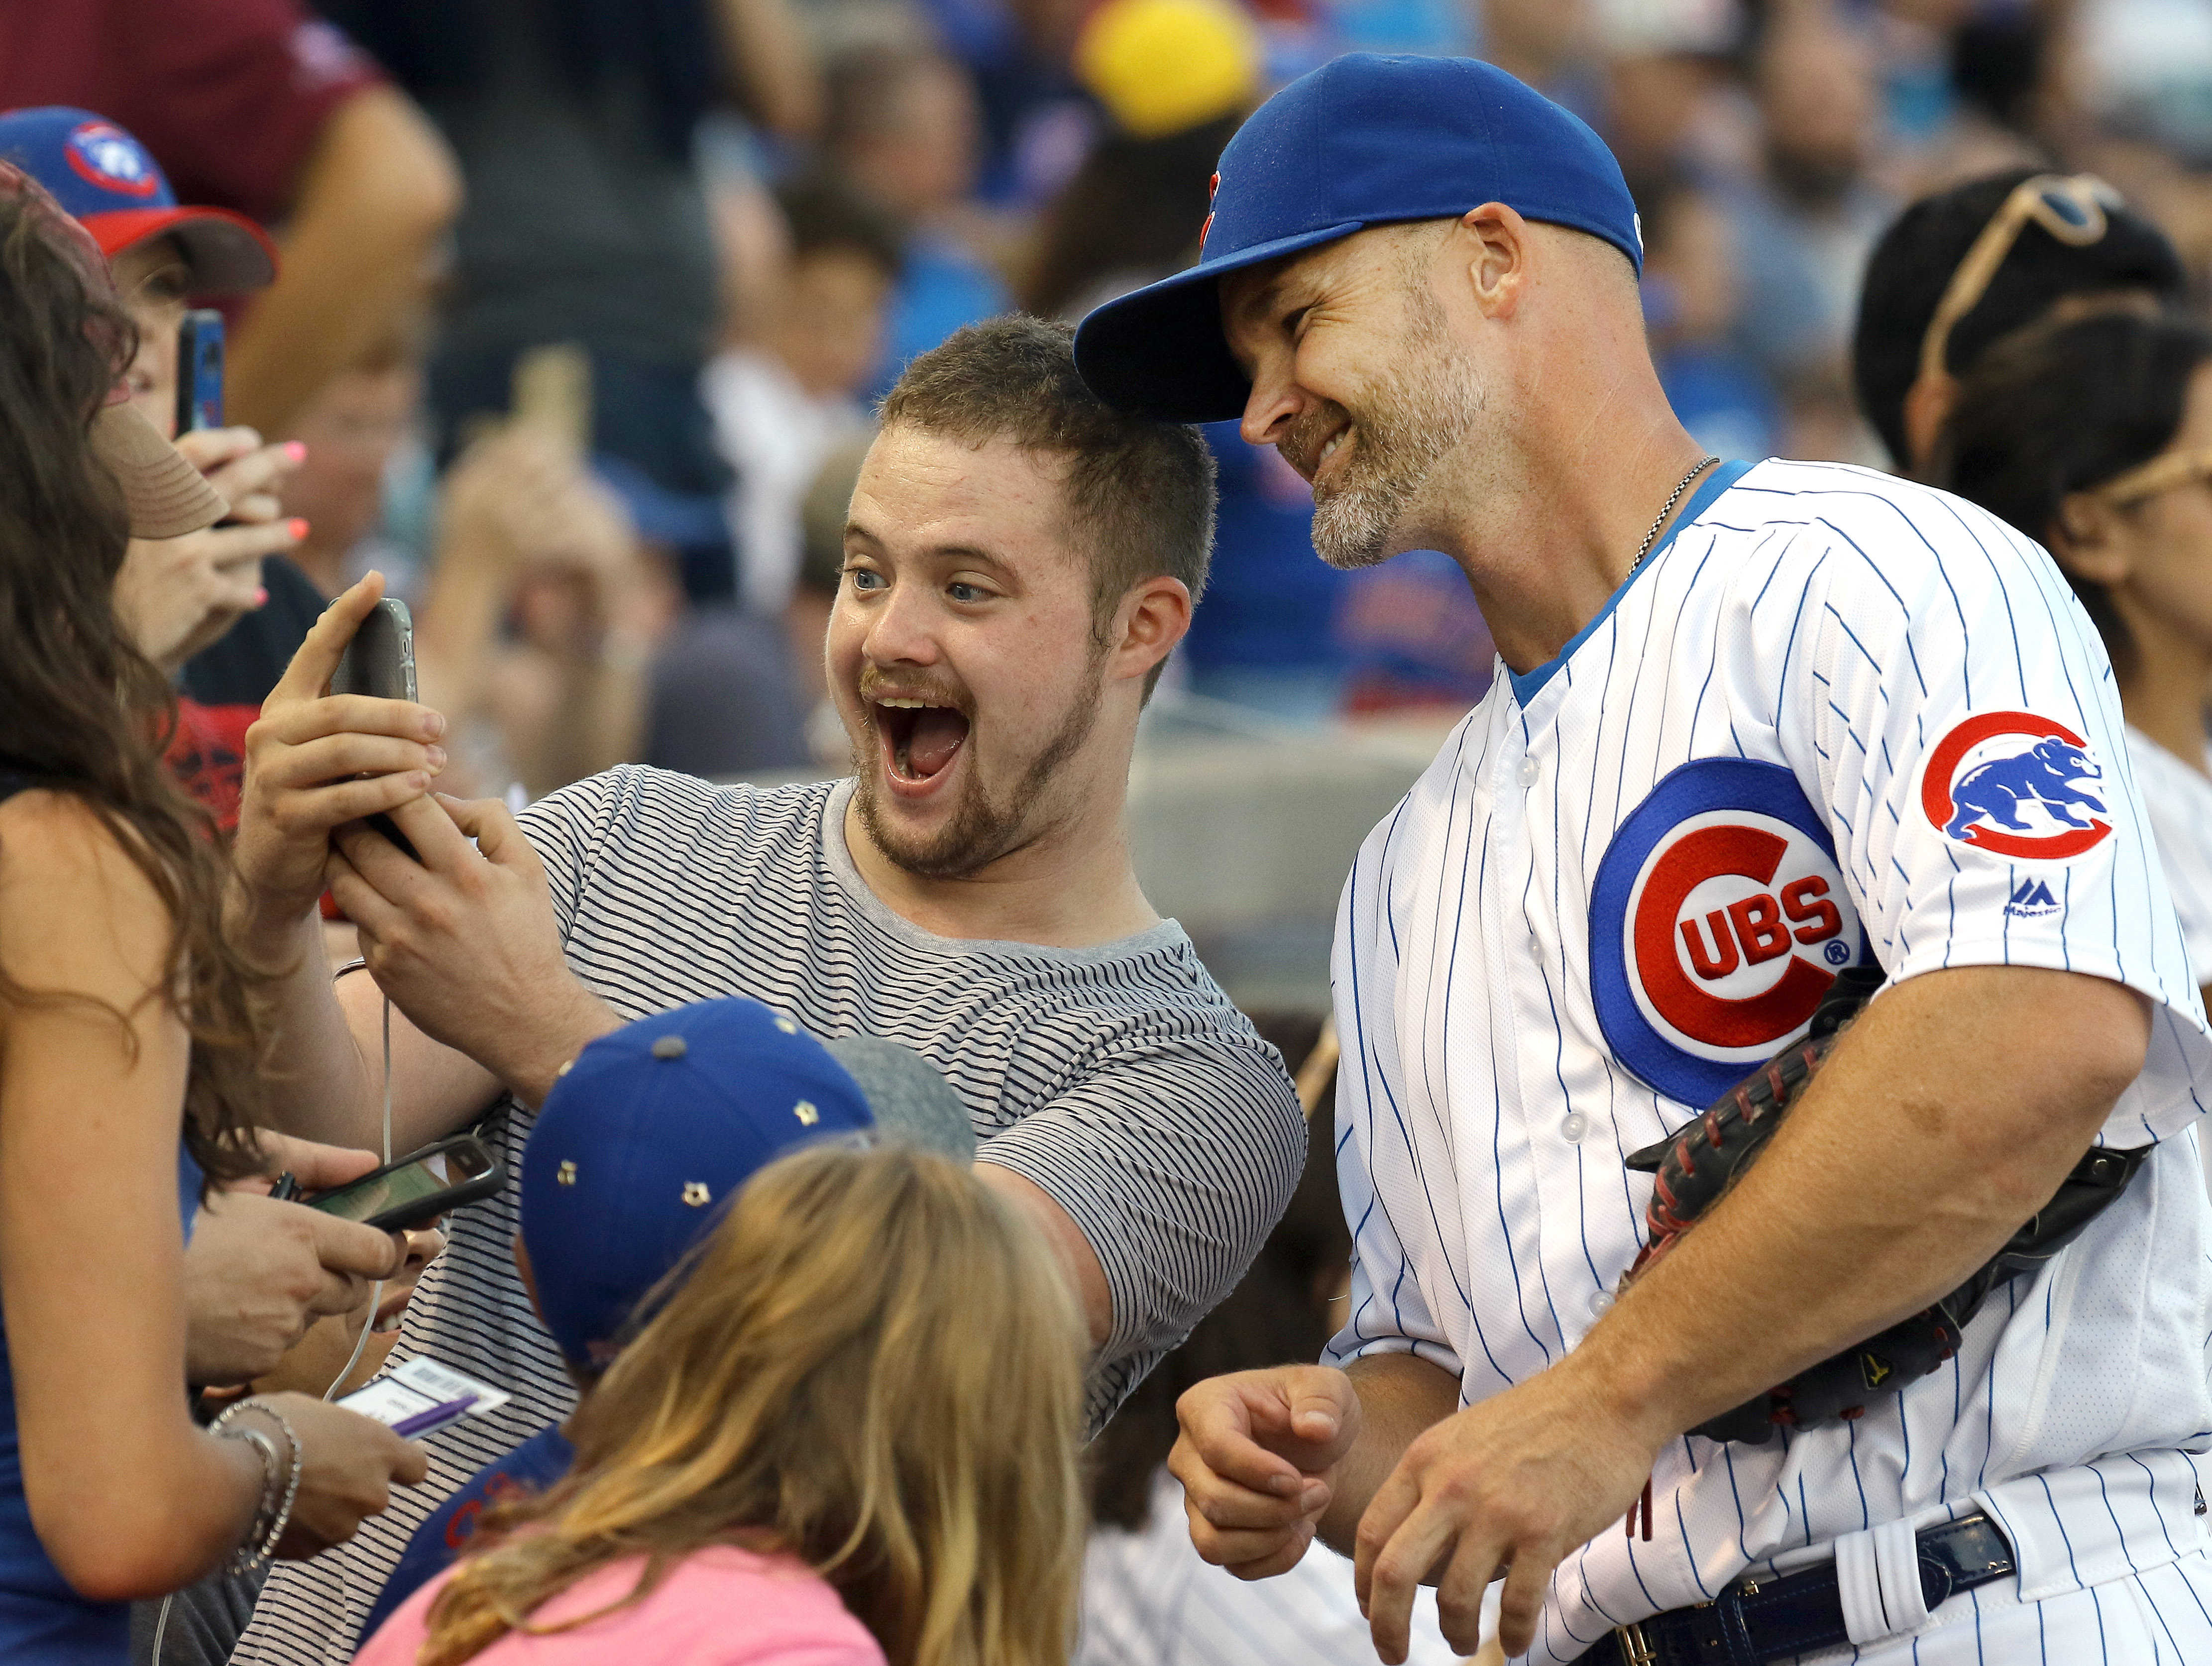 FILE - In this Aug. 30, 2016, file photo, a fan takes a selfie with Chicago Cubs' David Ross before a baseball game in Chicago. The most popular grandpa in Chicago these days just might be the 39-year-old Ross who plays for the most dominant team in the m